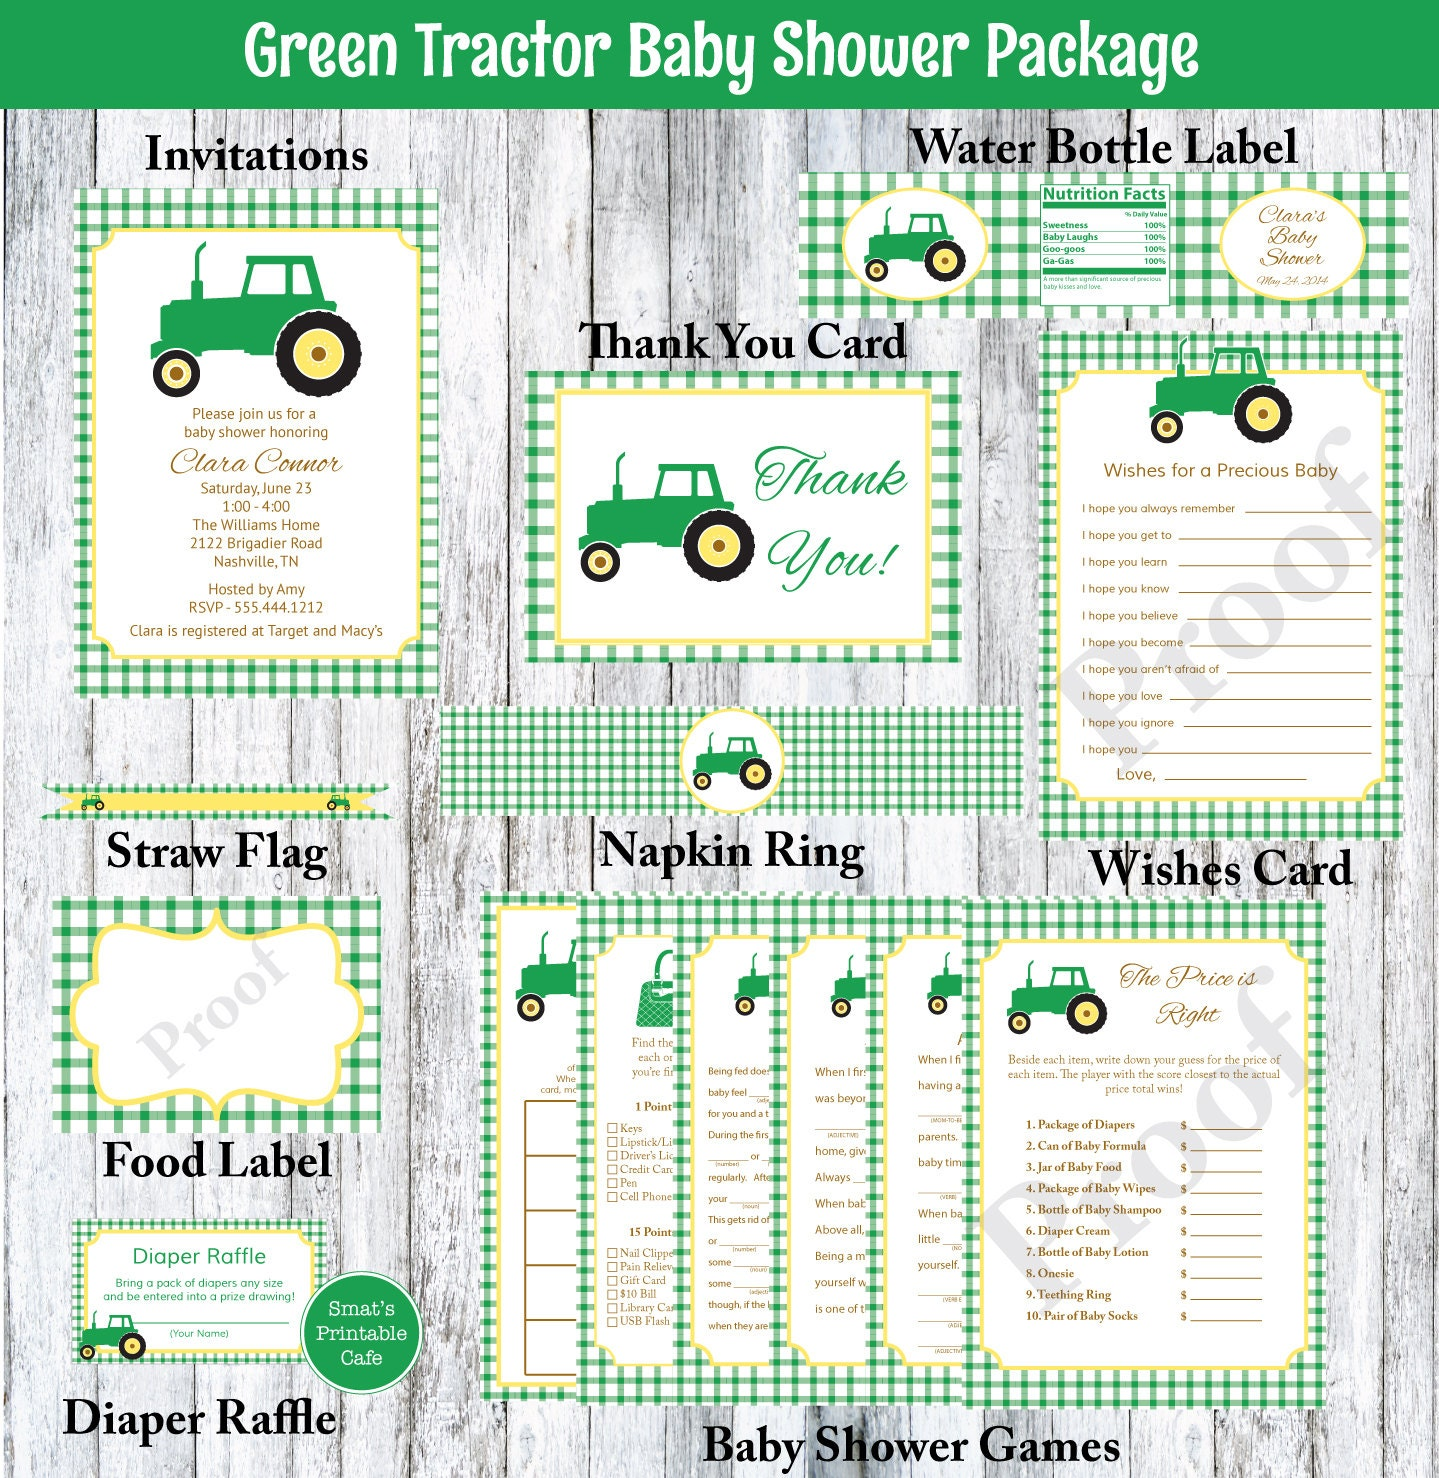 green tractor baby shower package printable invitation baby